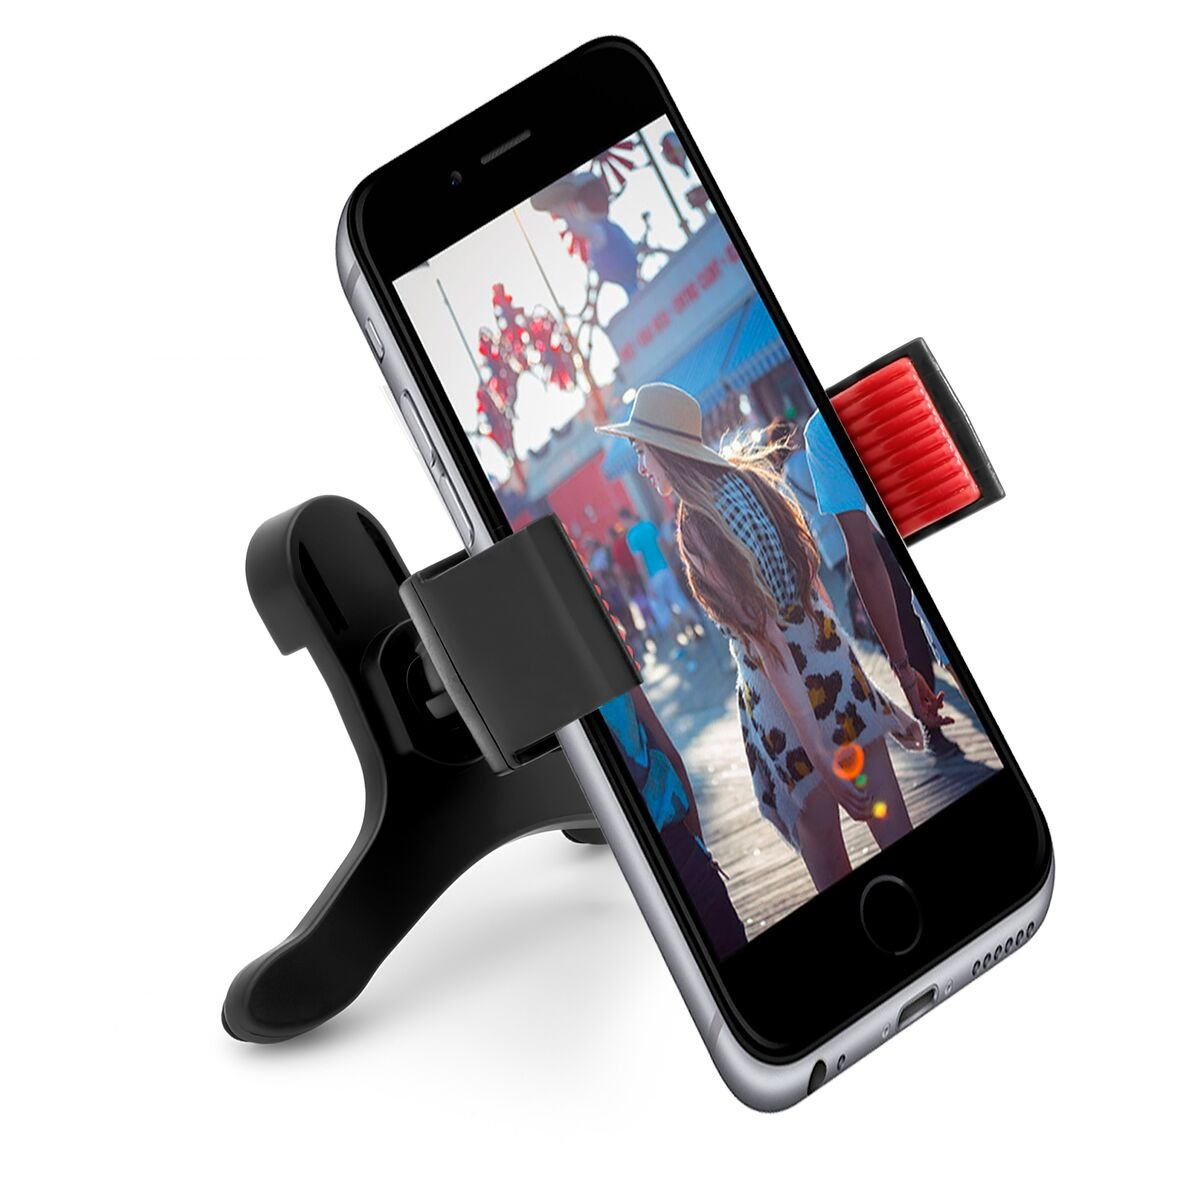 GPS Galaxy iPhone 360 Degree Rotation Affordable Universal Air Vent Phone Holder Car Mount for Cell Phones Smartphones Android